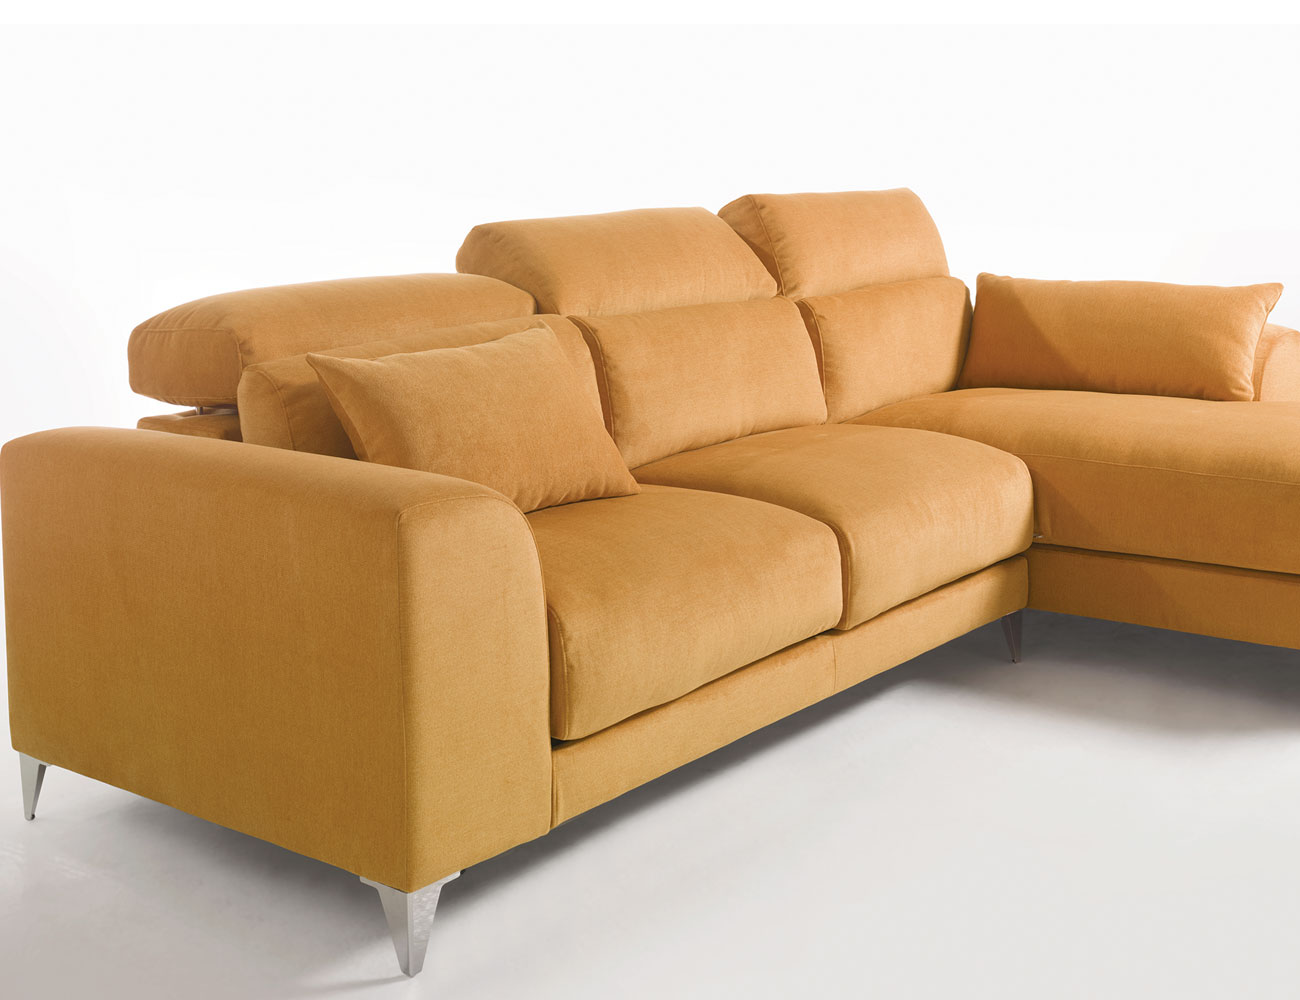 Sofa chaiselongue gran lujo decorativo patas altas amarillo 29